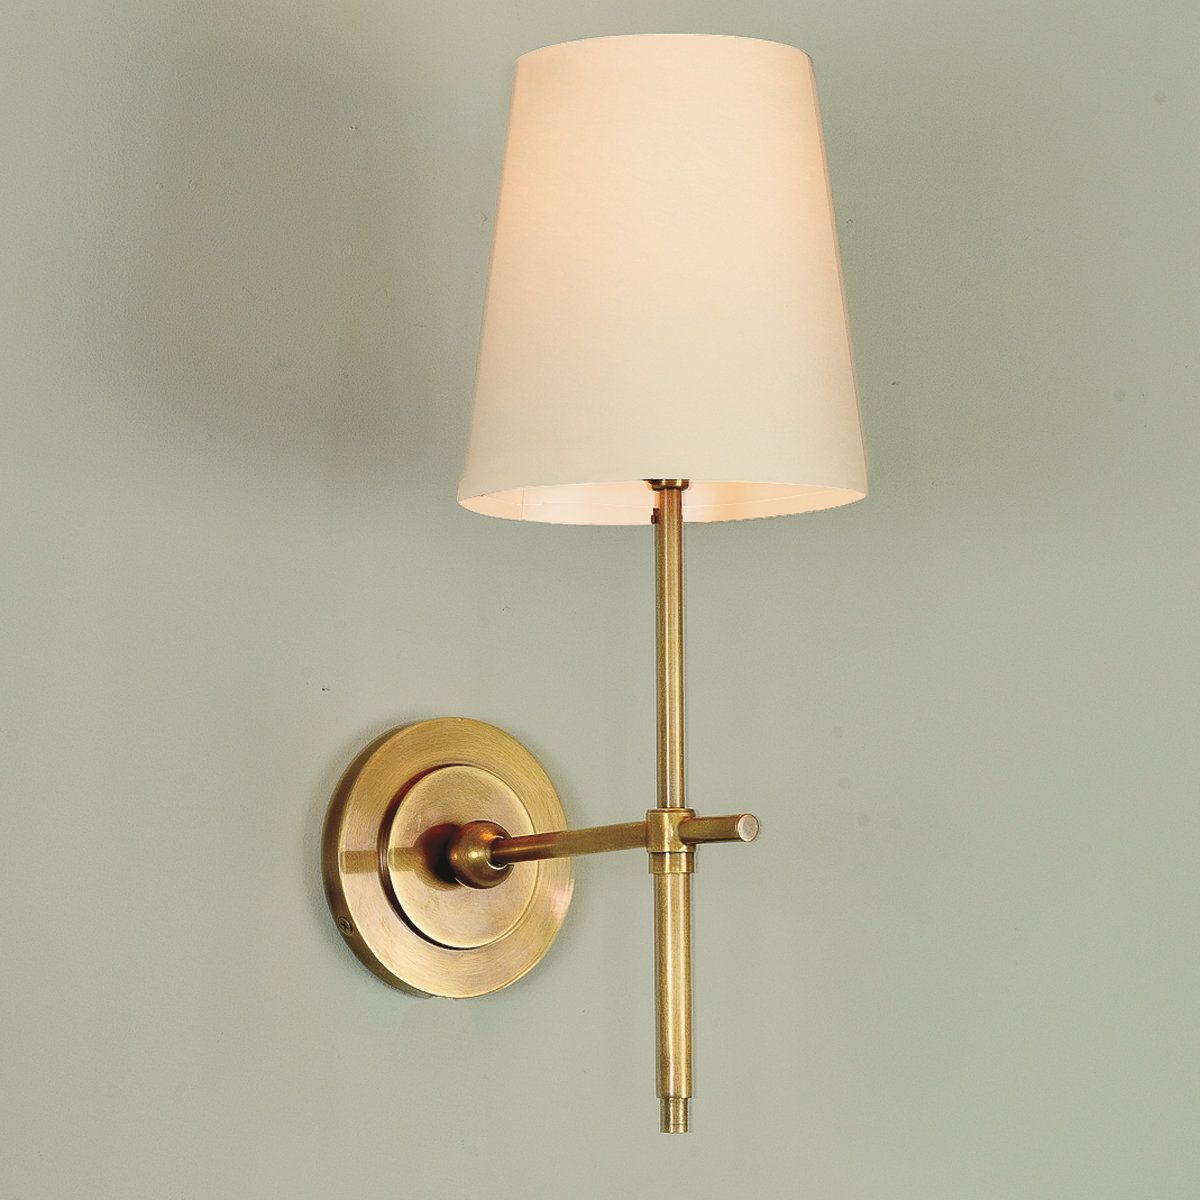 199 00 From Shades Of Light Soho Sconce Antique Br